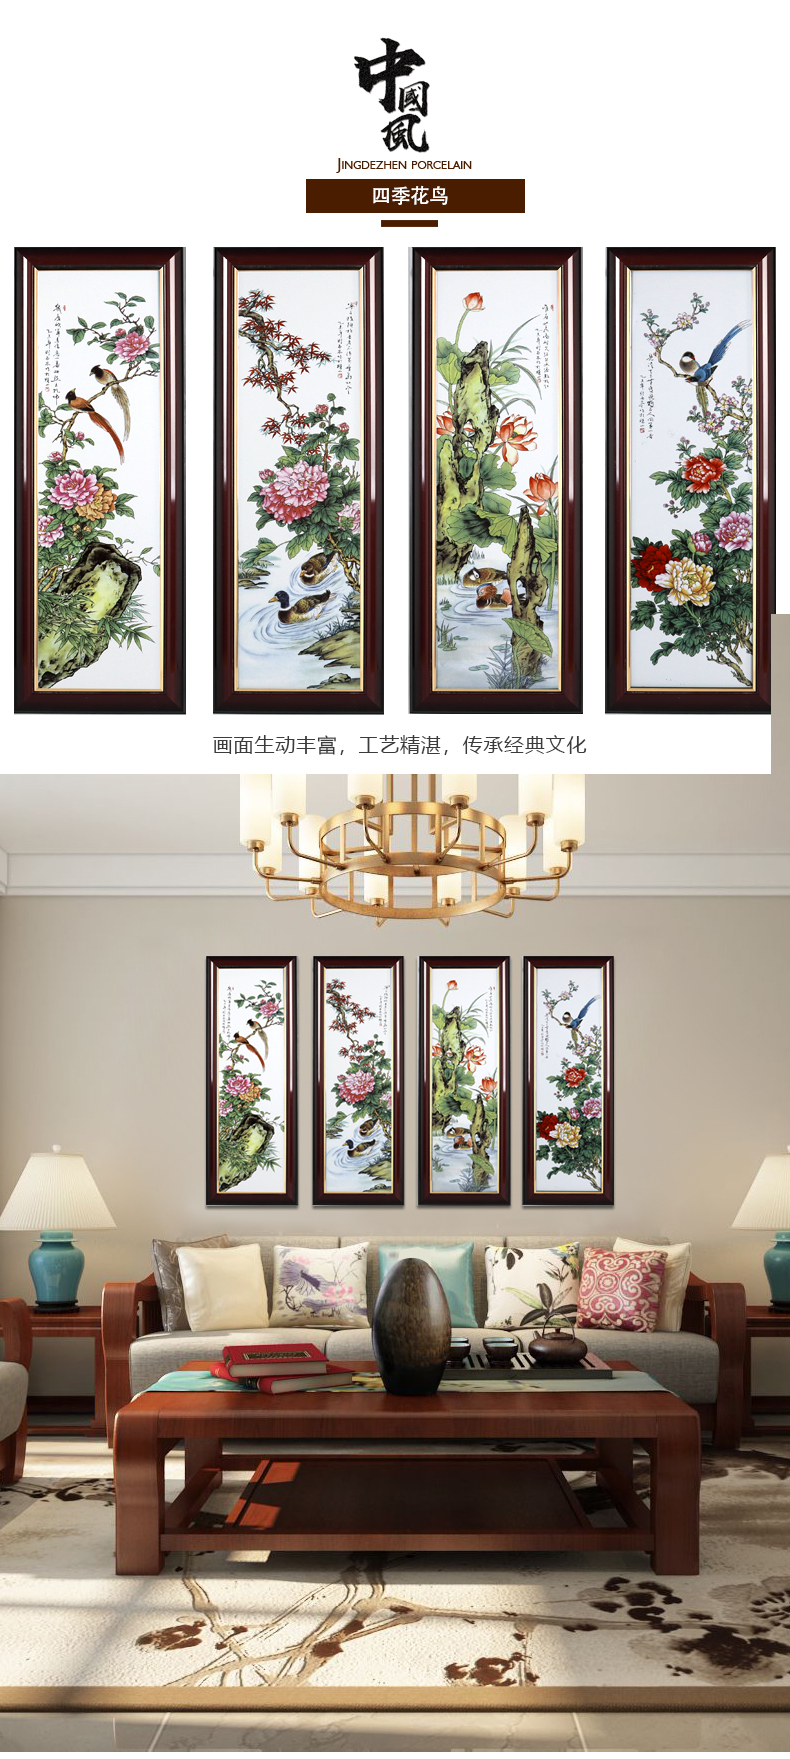 Ceramic painting hand - made scenery jingdezhen porcelain plate four screen adornment home sitting room sofa background wall hangs a picture